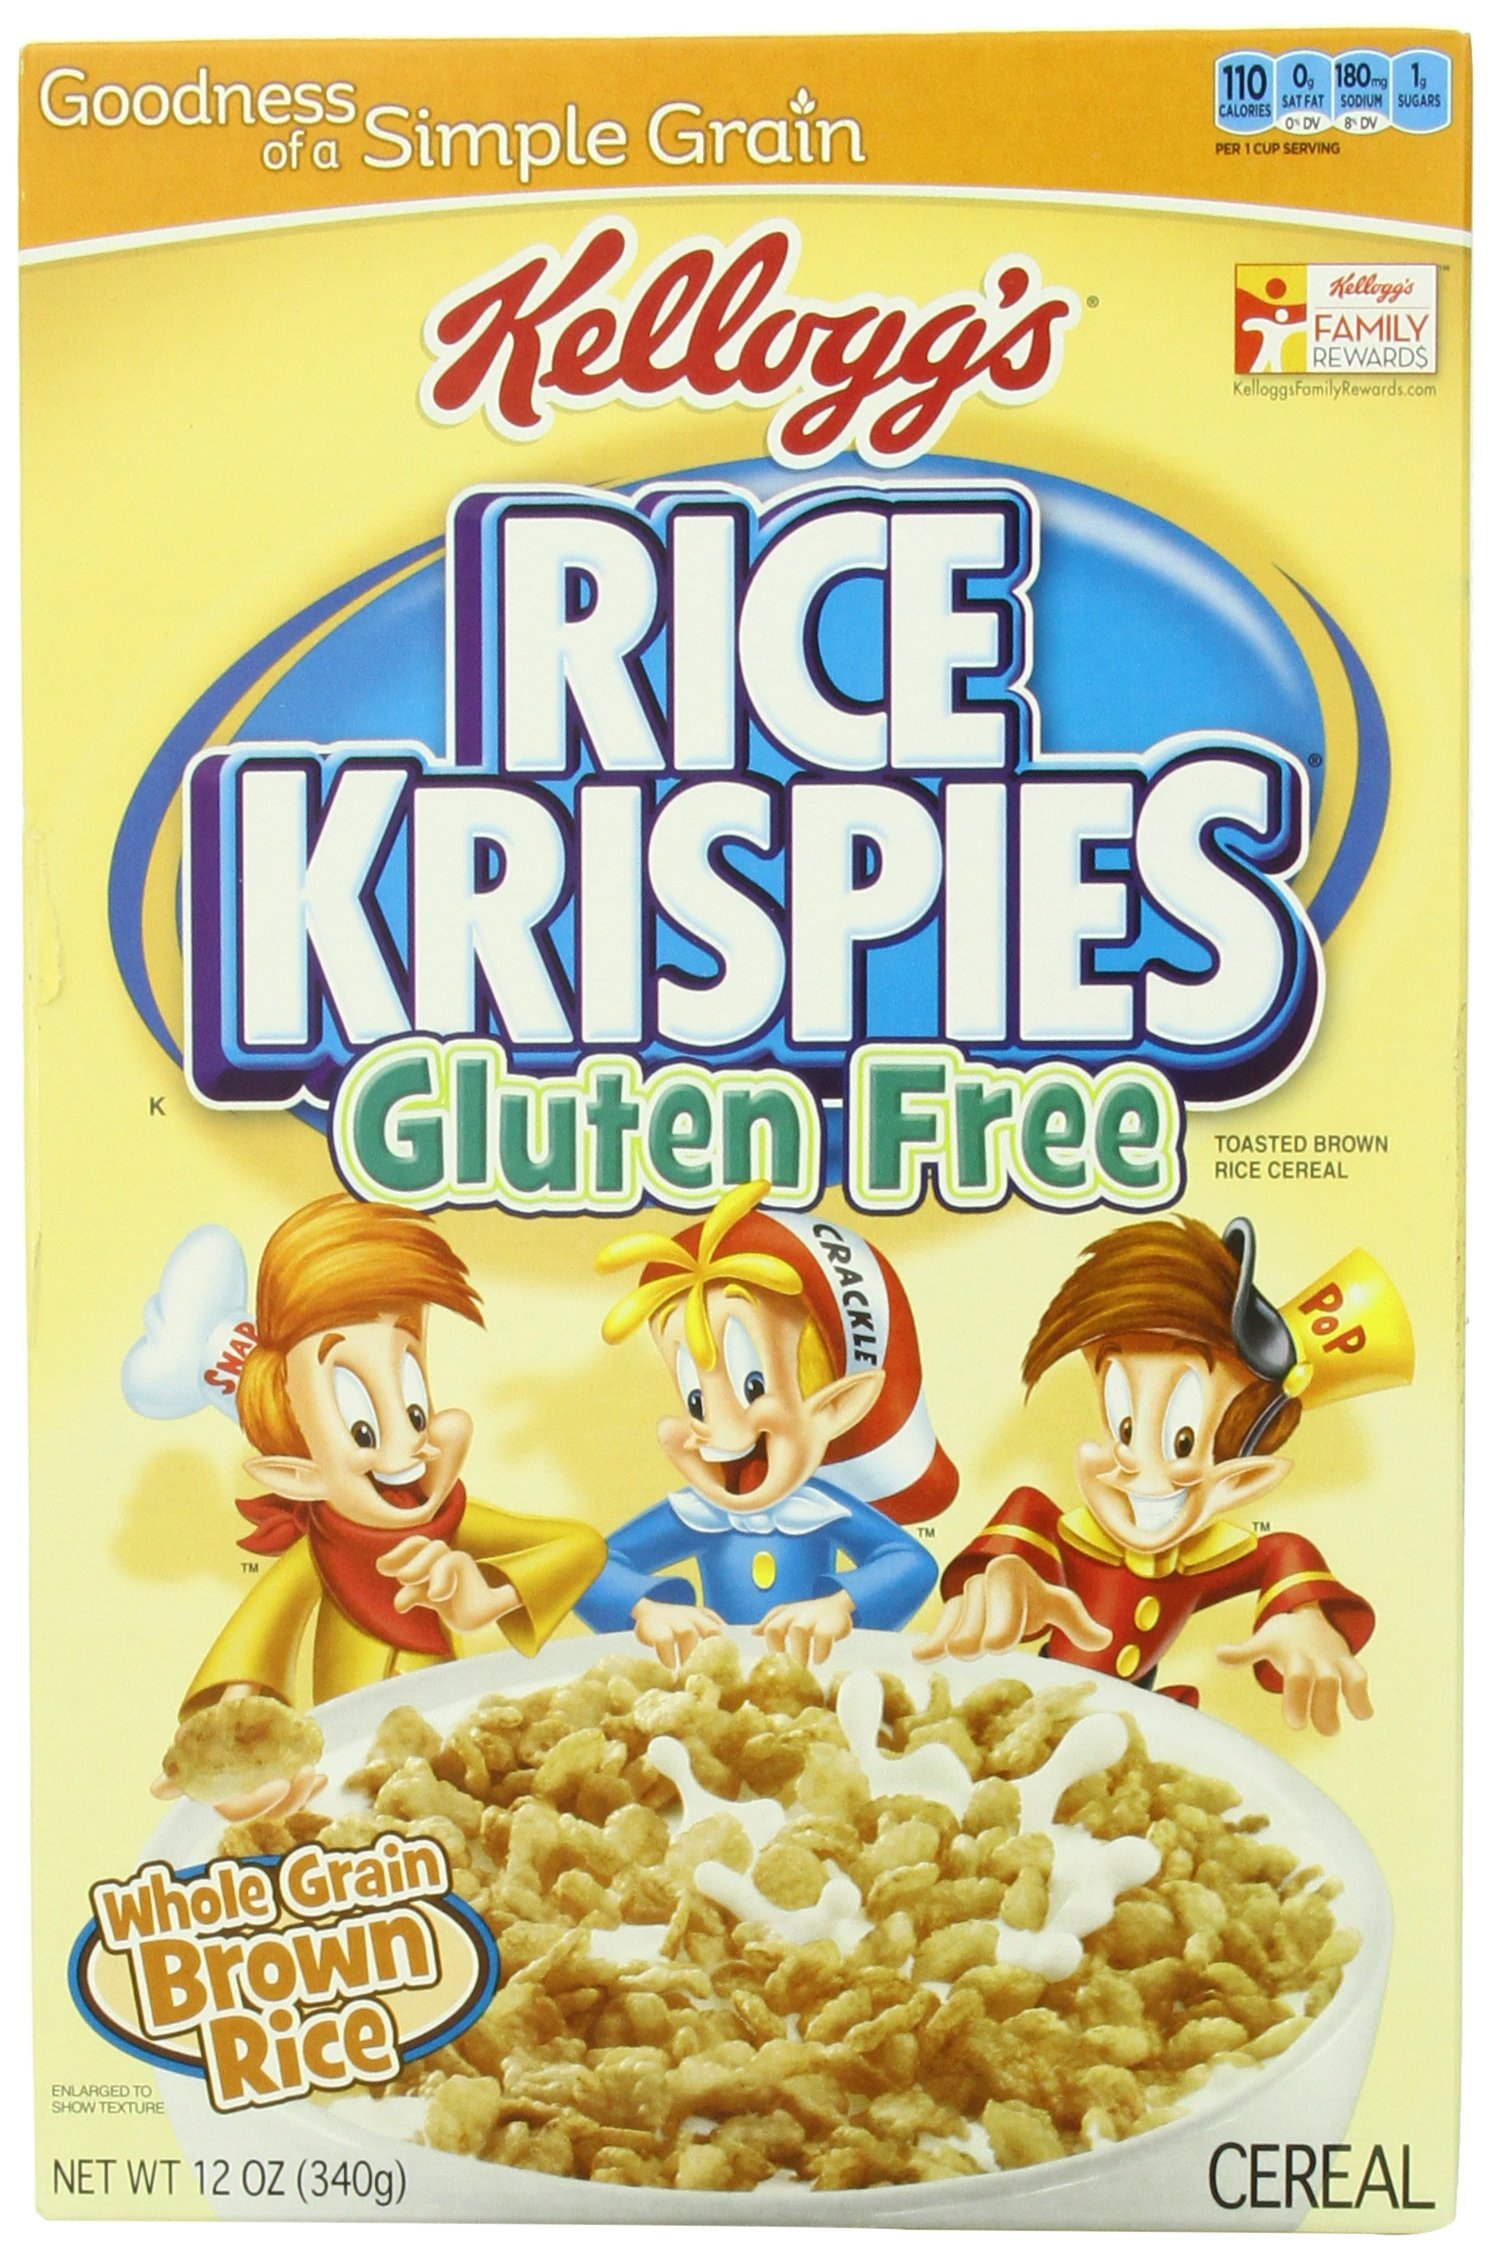 Kellogg's Rice Krispies Gluten Free Cereal, Whole Grain Brown Rice, 12-Ounce Boxes (Pack of 4) (Discontinued By Manufacturer) by Kellogg's